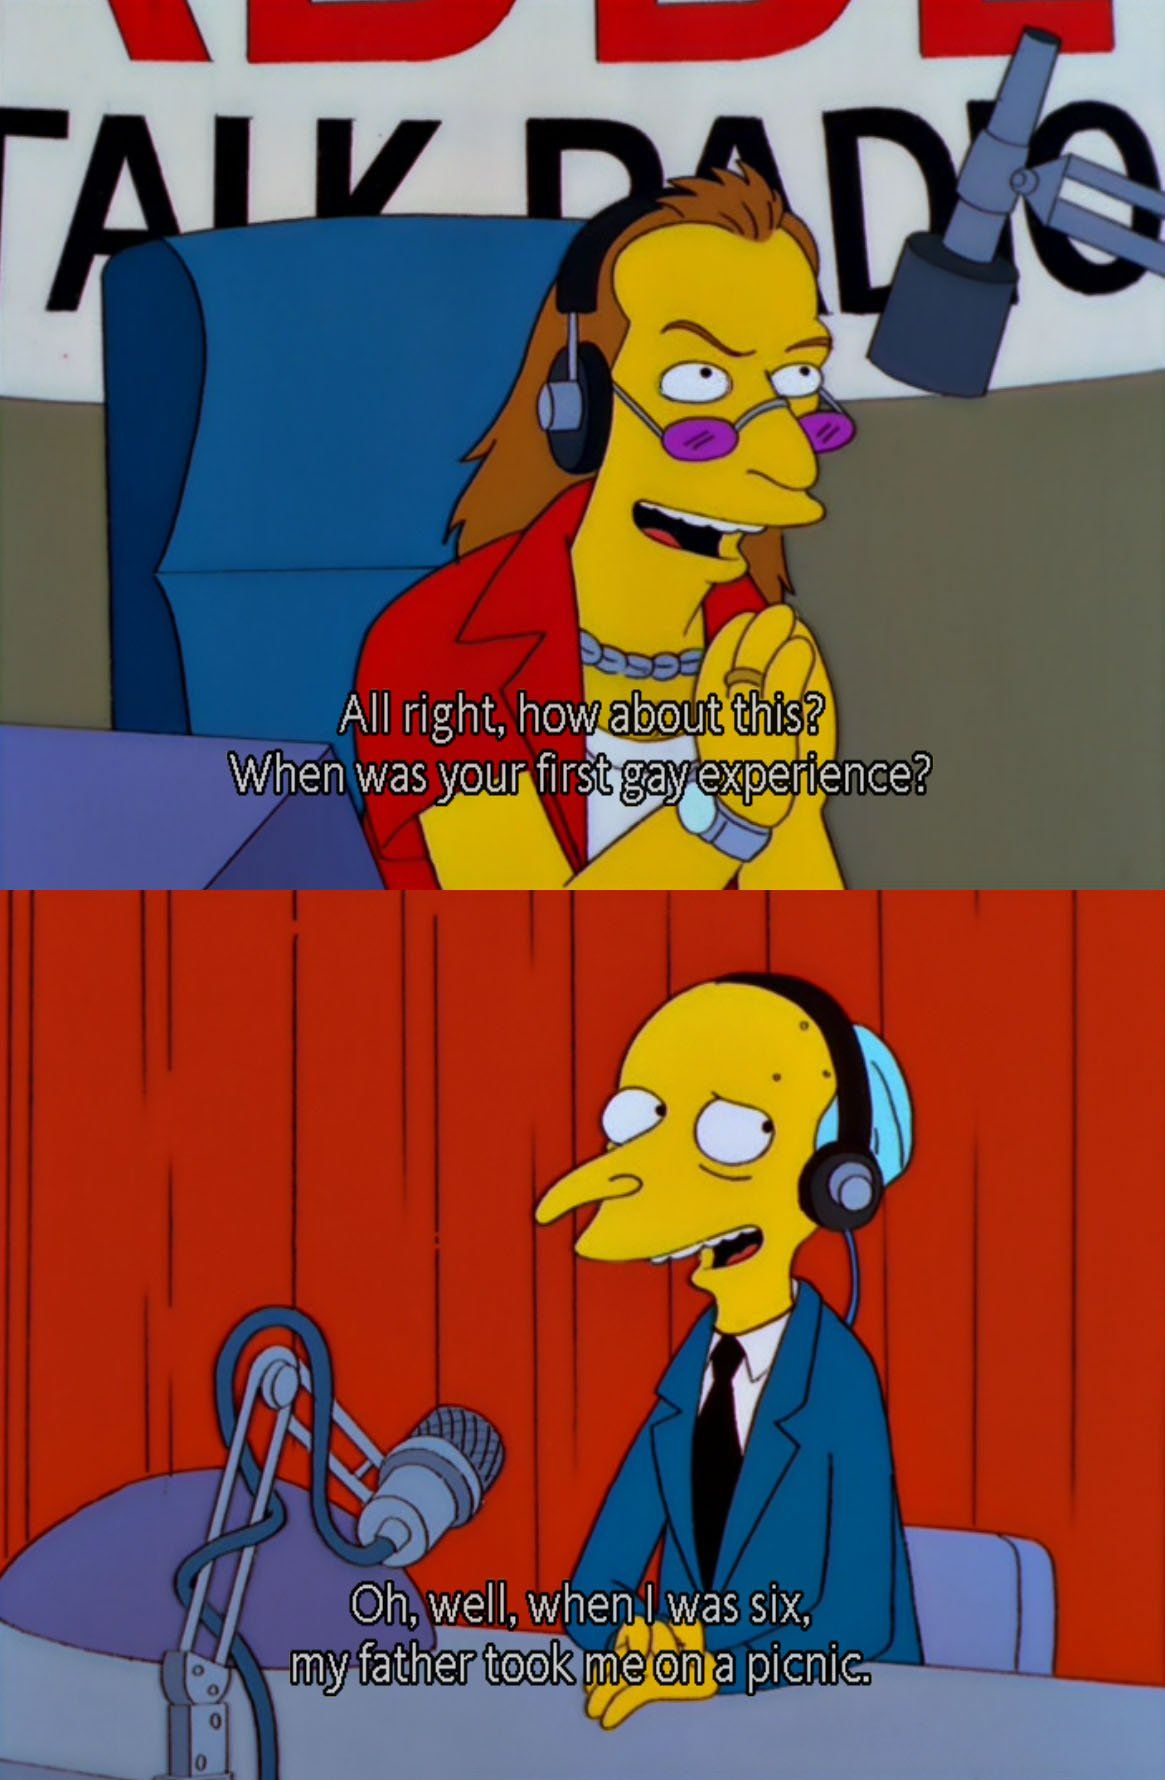 25 Times Mr. Burns Was Our Favorite TV Bad Guy